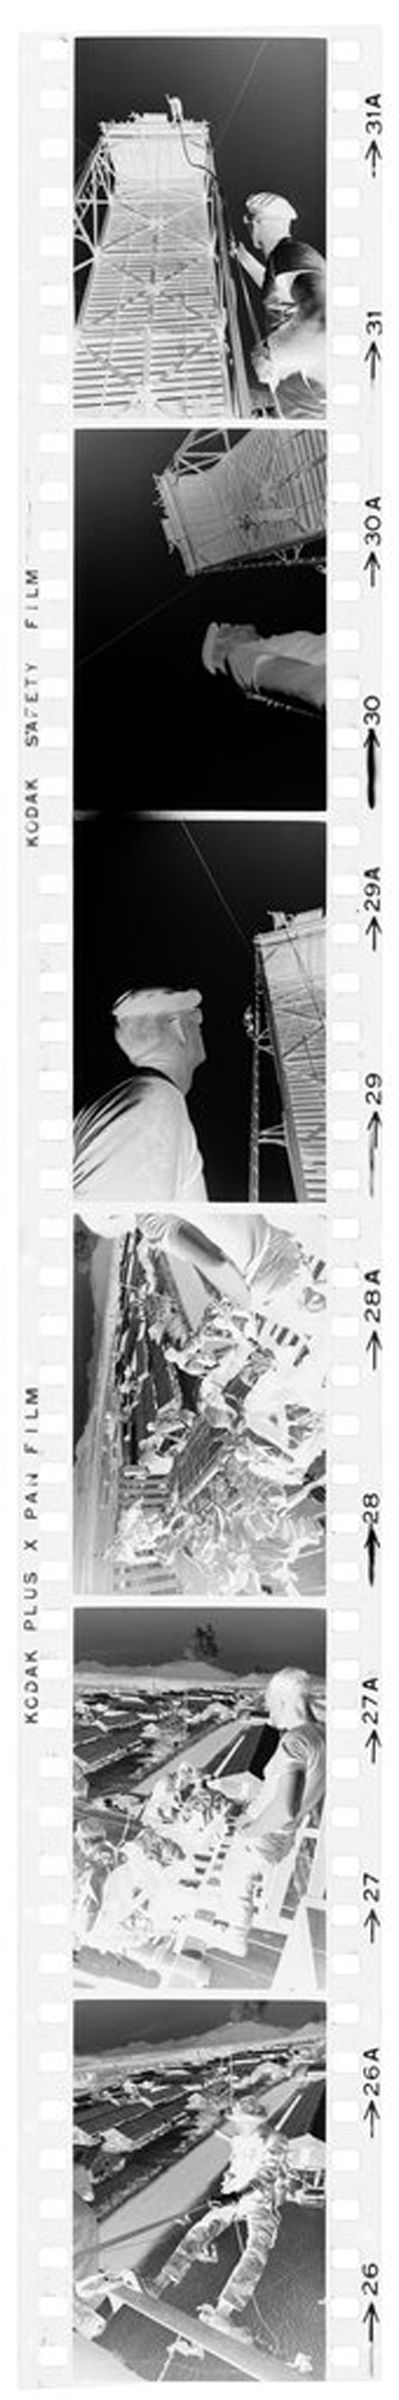 Untitled (Soldiers Rappelling From Tower During Recondo Training, Army Special Forces School, Nha Trang, Vietnam)